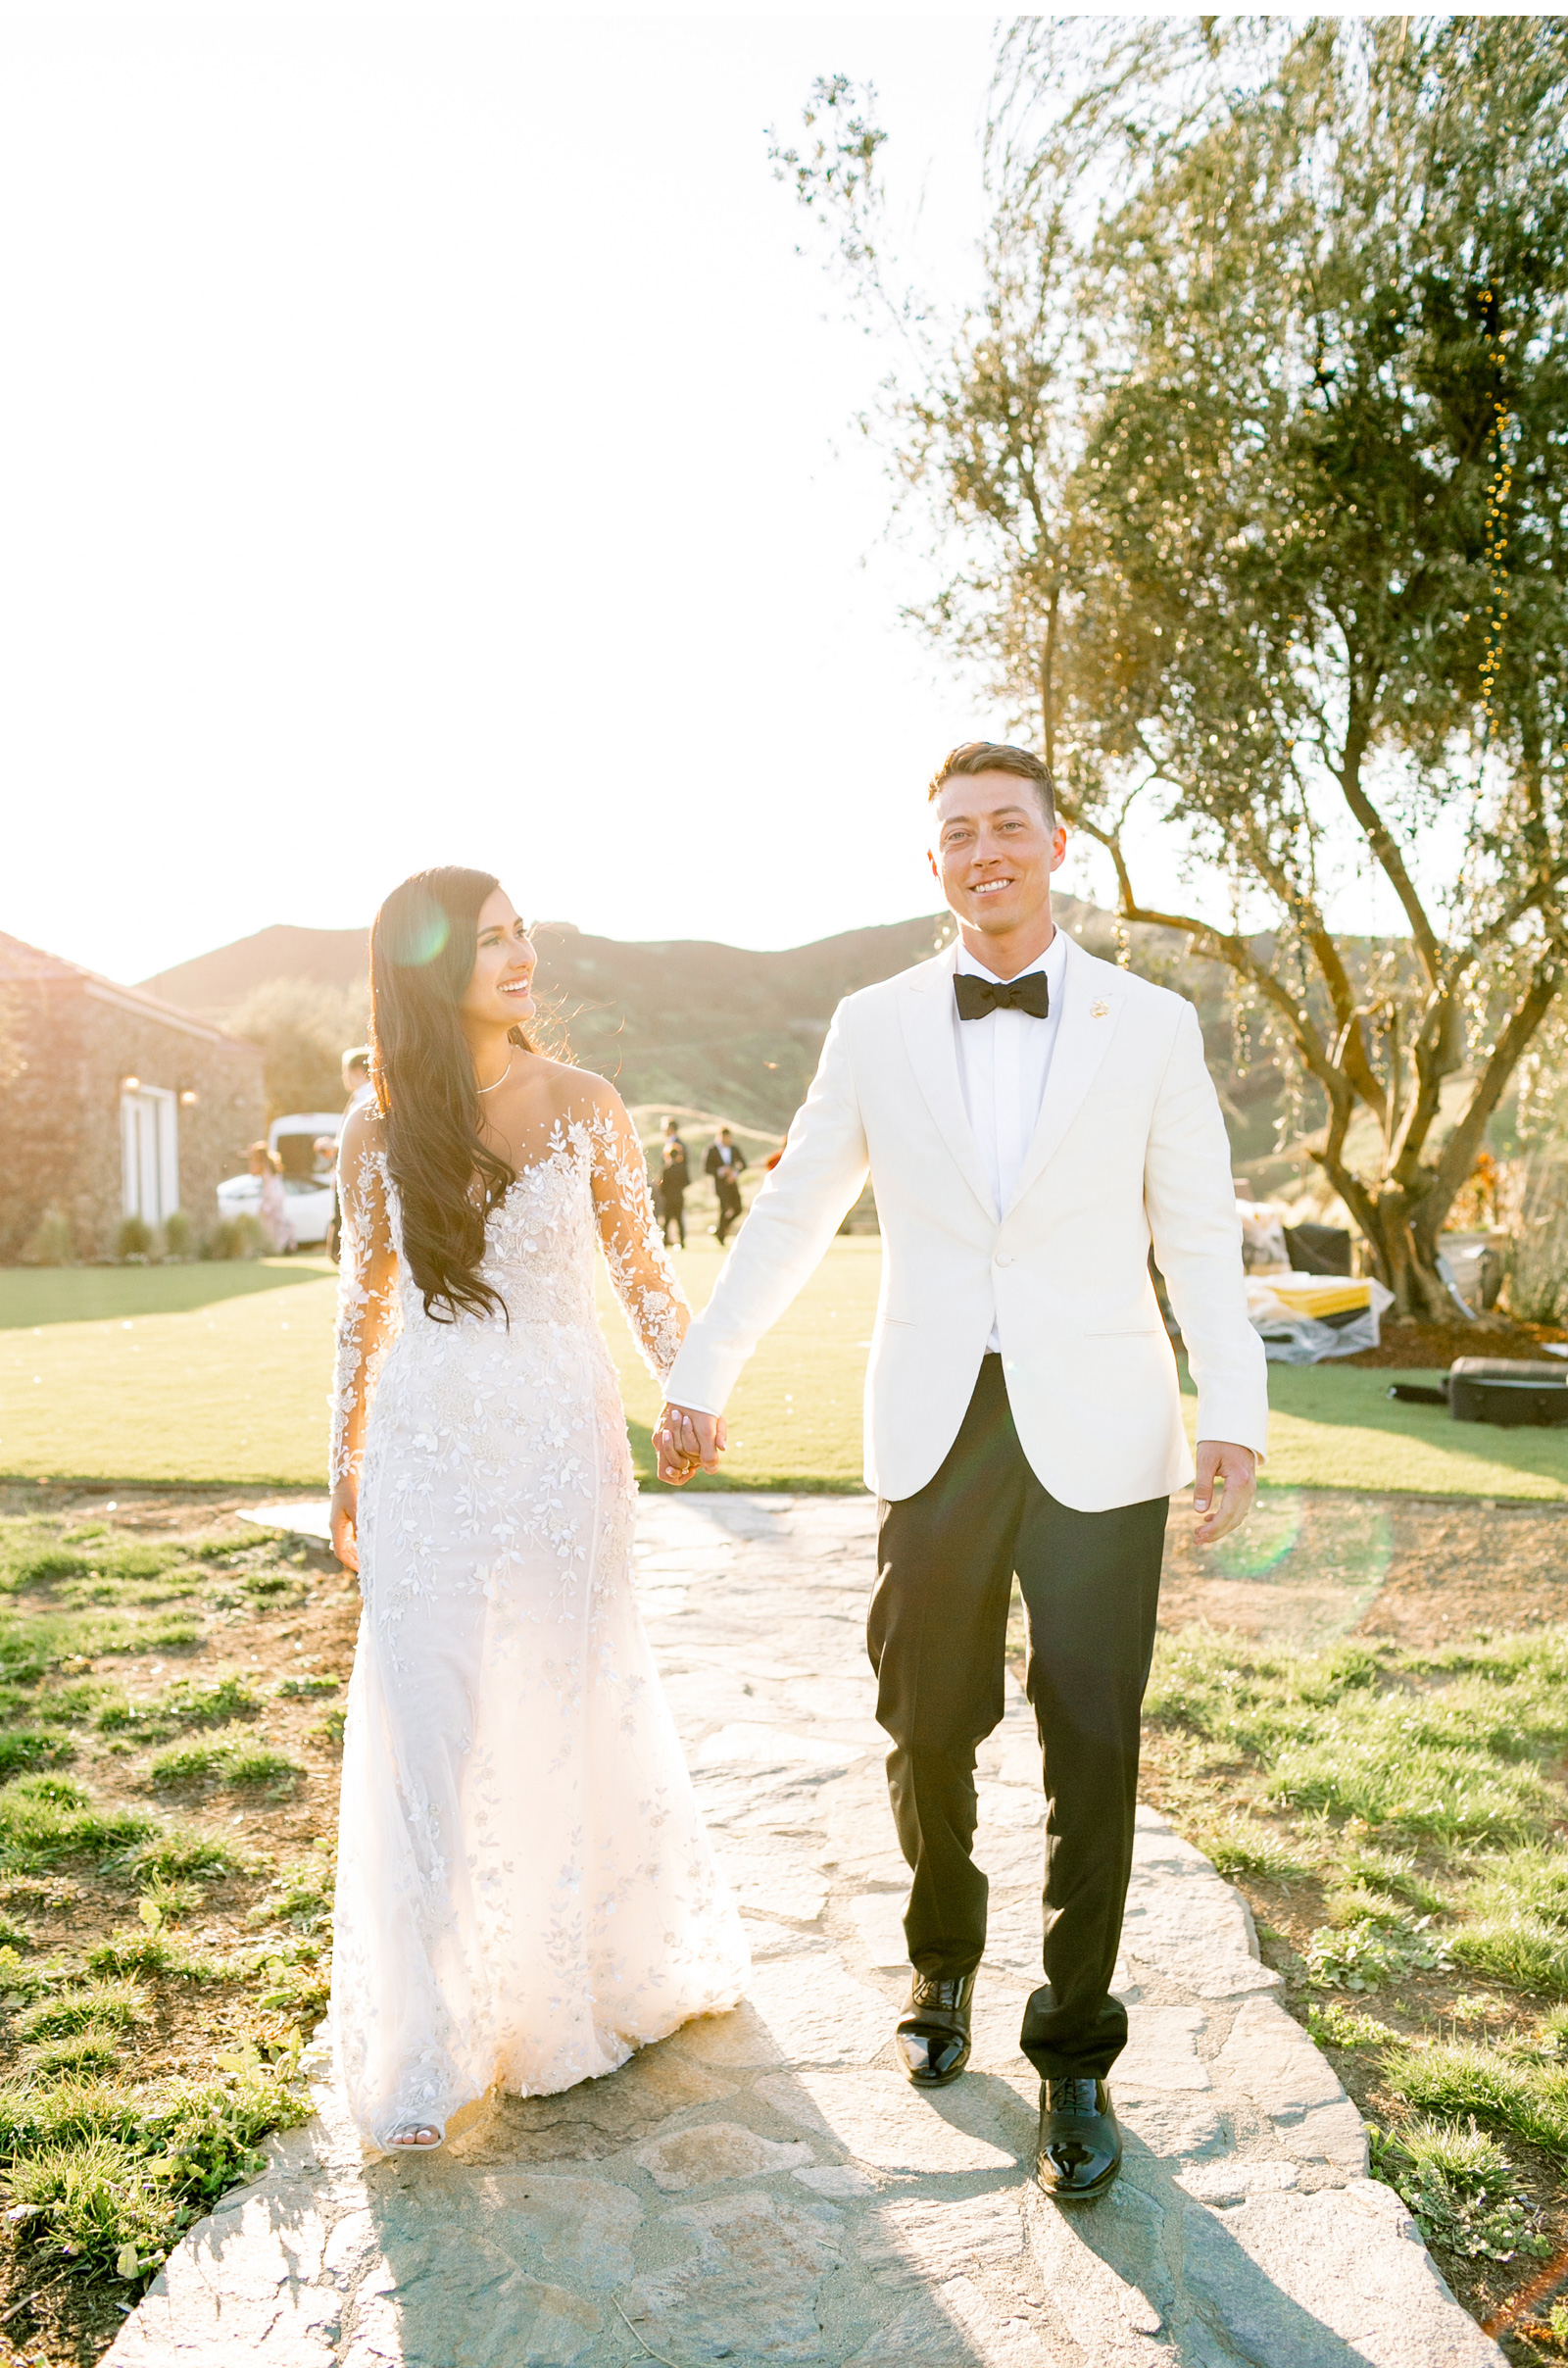 Malibu-Wedding-Venue-Photographer-Southern-California-Fine-Art-Wedding-Photo-Style-Me-Pretty-Natalie-Schutt-Photography_13.jpg